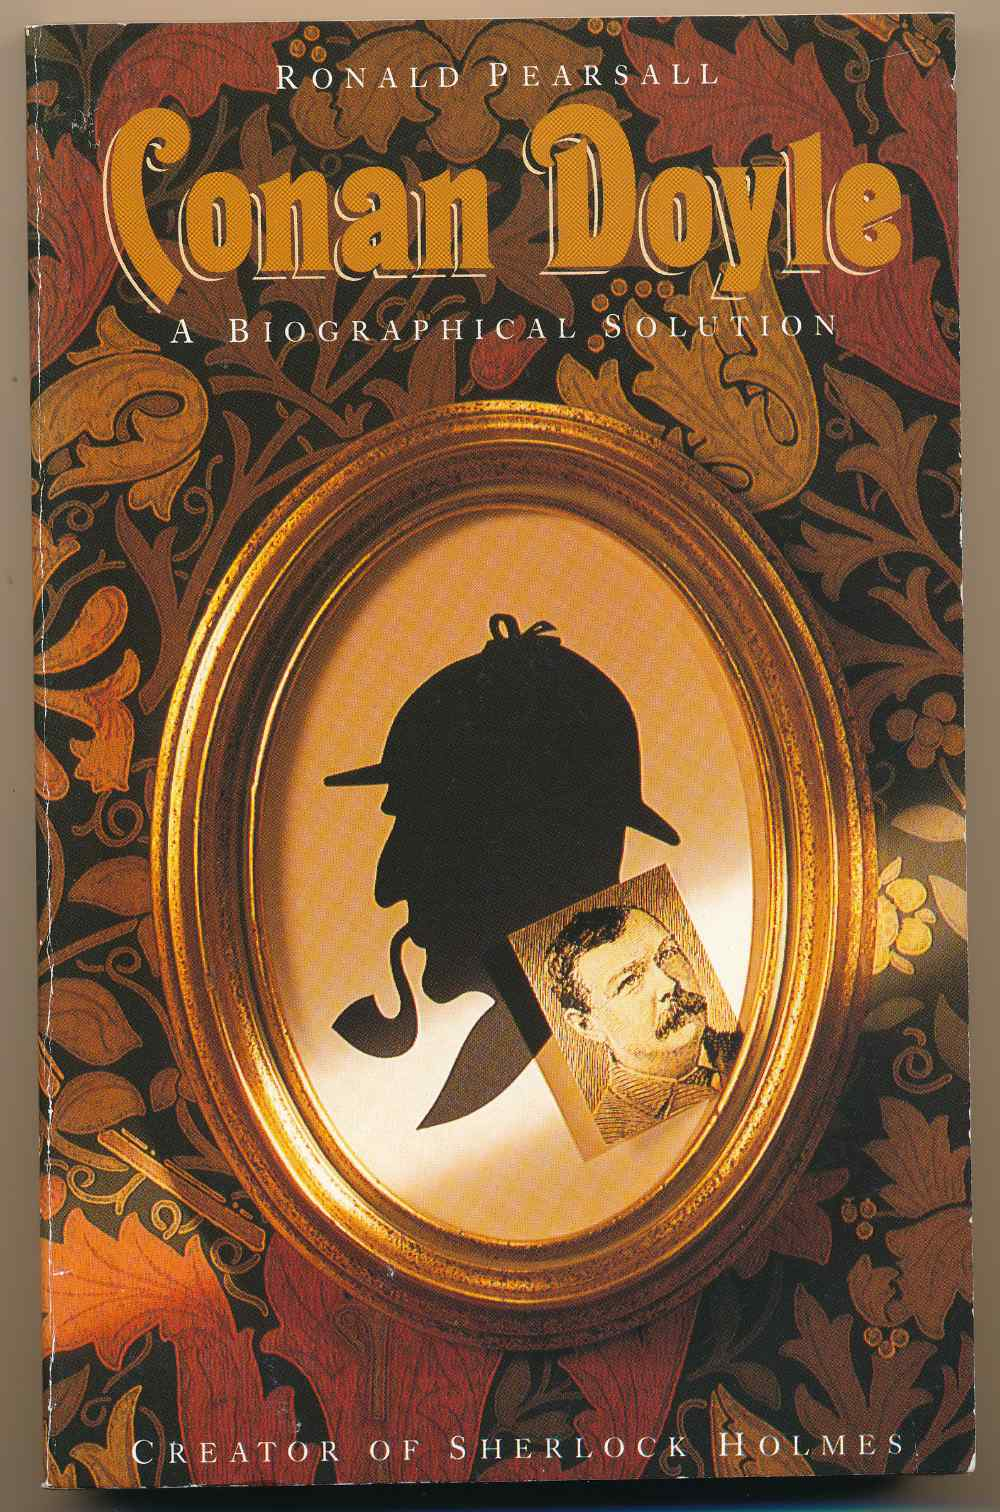 Conan Doyle : a biographical solution